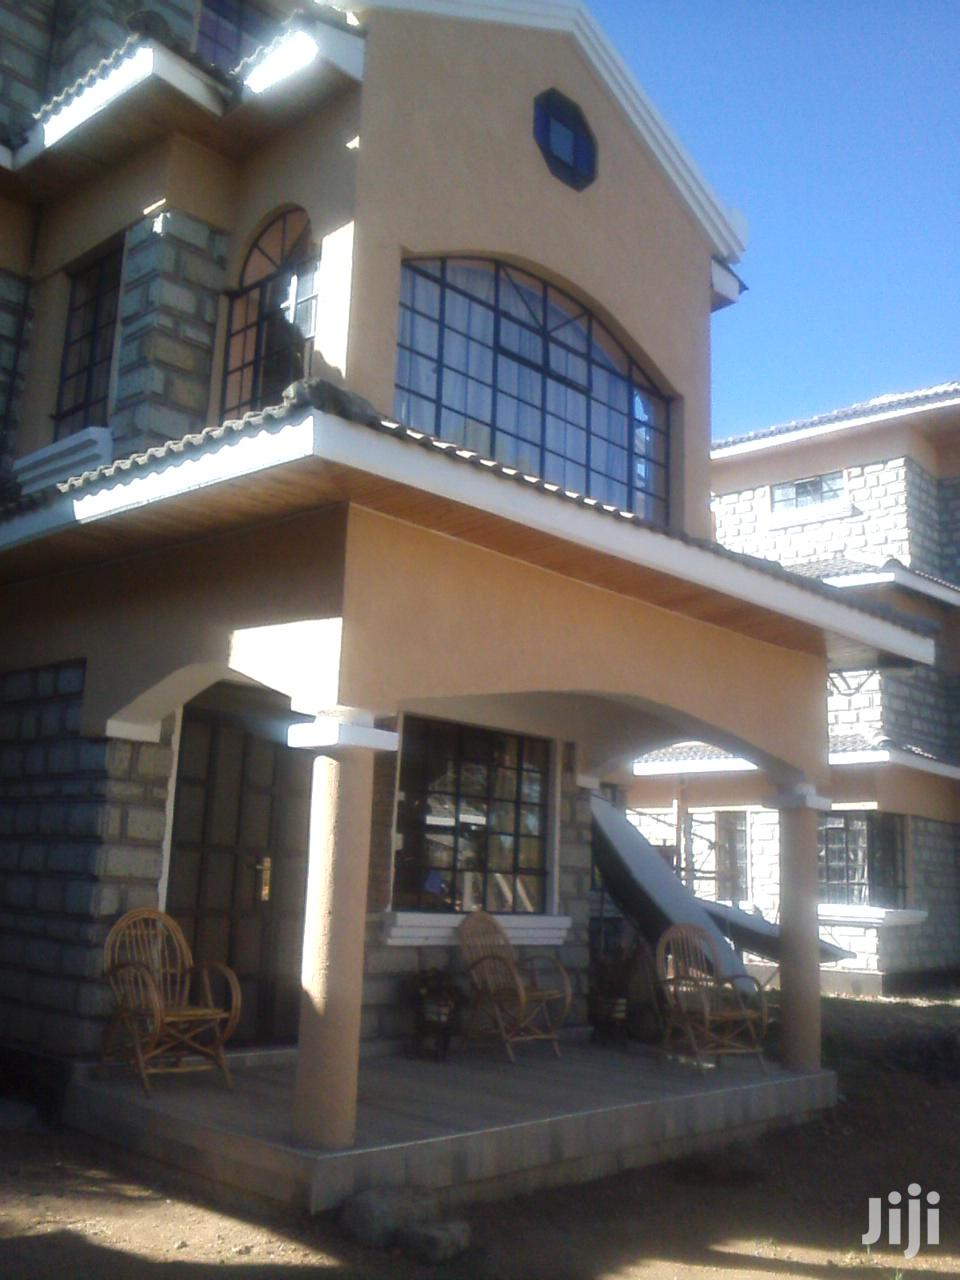 TOWN Villas 5 Bedroomed All En-Suite in a Secure Environs of ELGON V | Houses & Apartments For Rent for sale in Racecourse, Uasin Gishu, Kenya